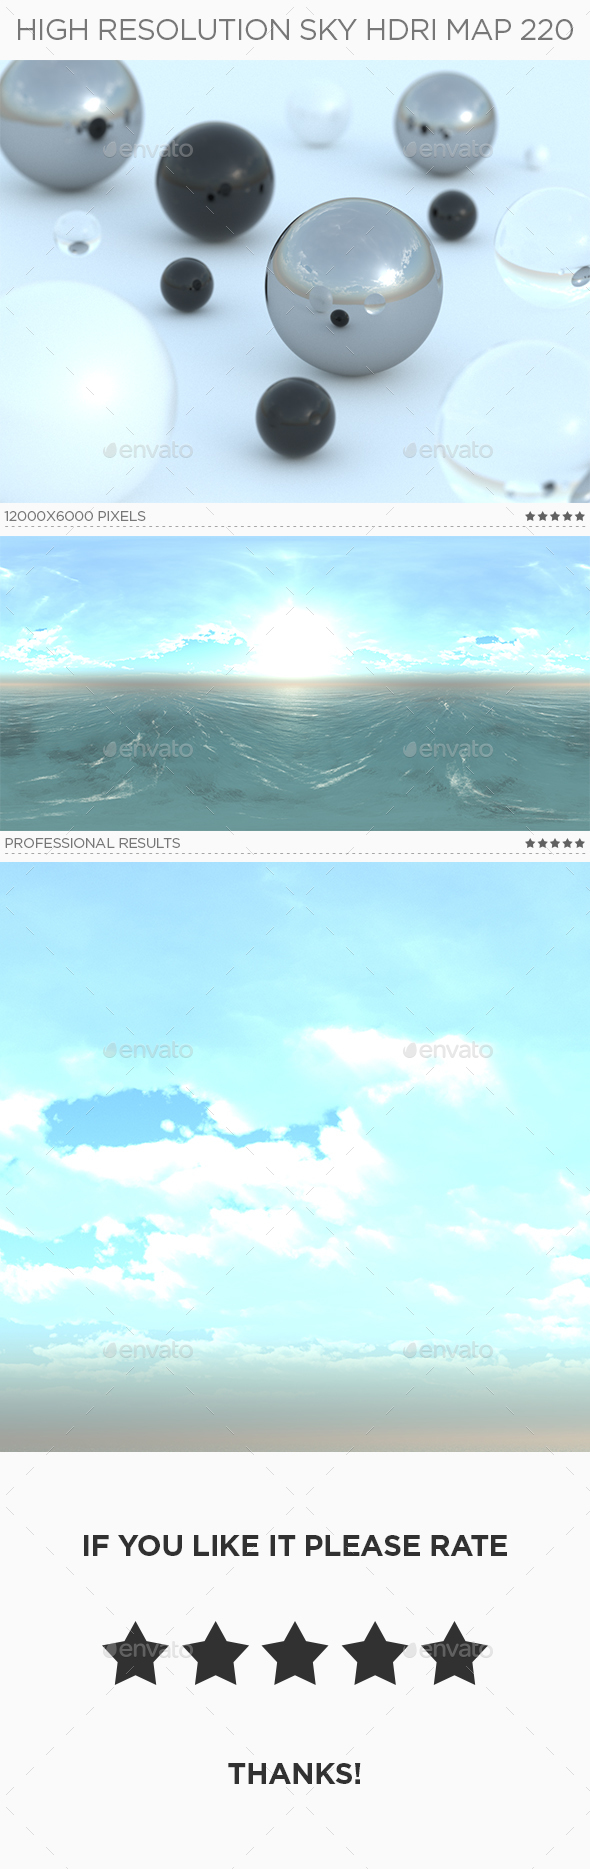 High Resolution Sky HDRi Map 220 - 3DOcean Item for Sale